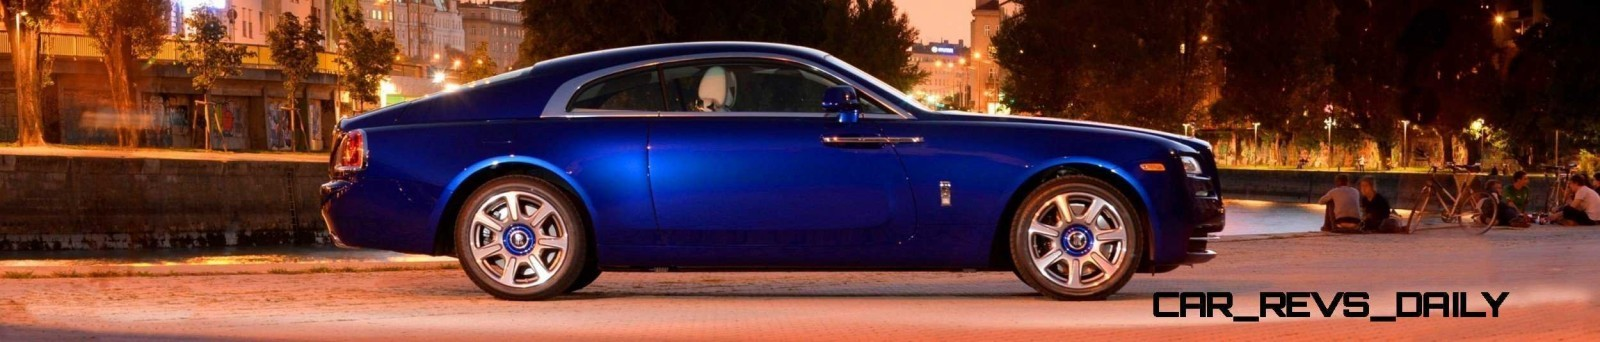 Rolls-Royce Wraith - Color Showcase - Salamanca Blue25